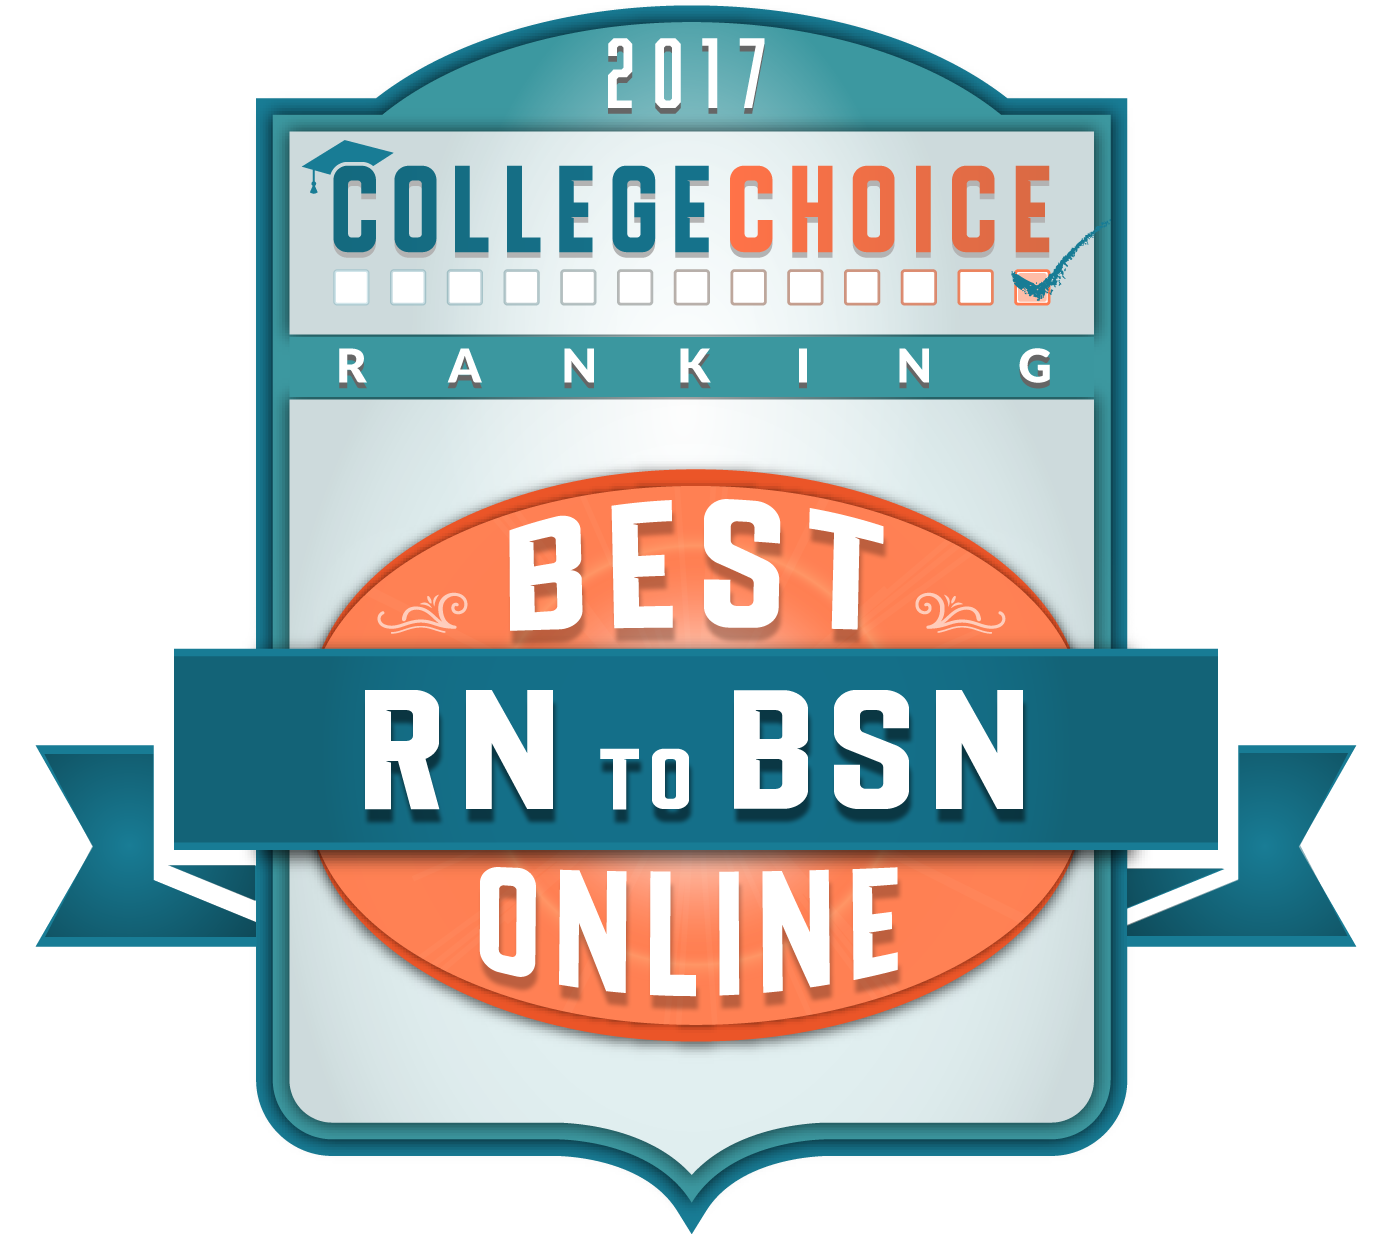 College Choice Best Online RN to BSN Image